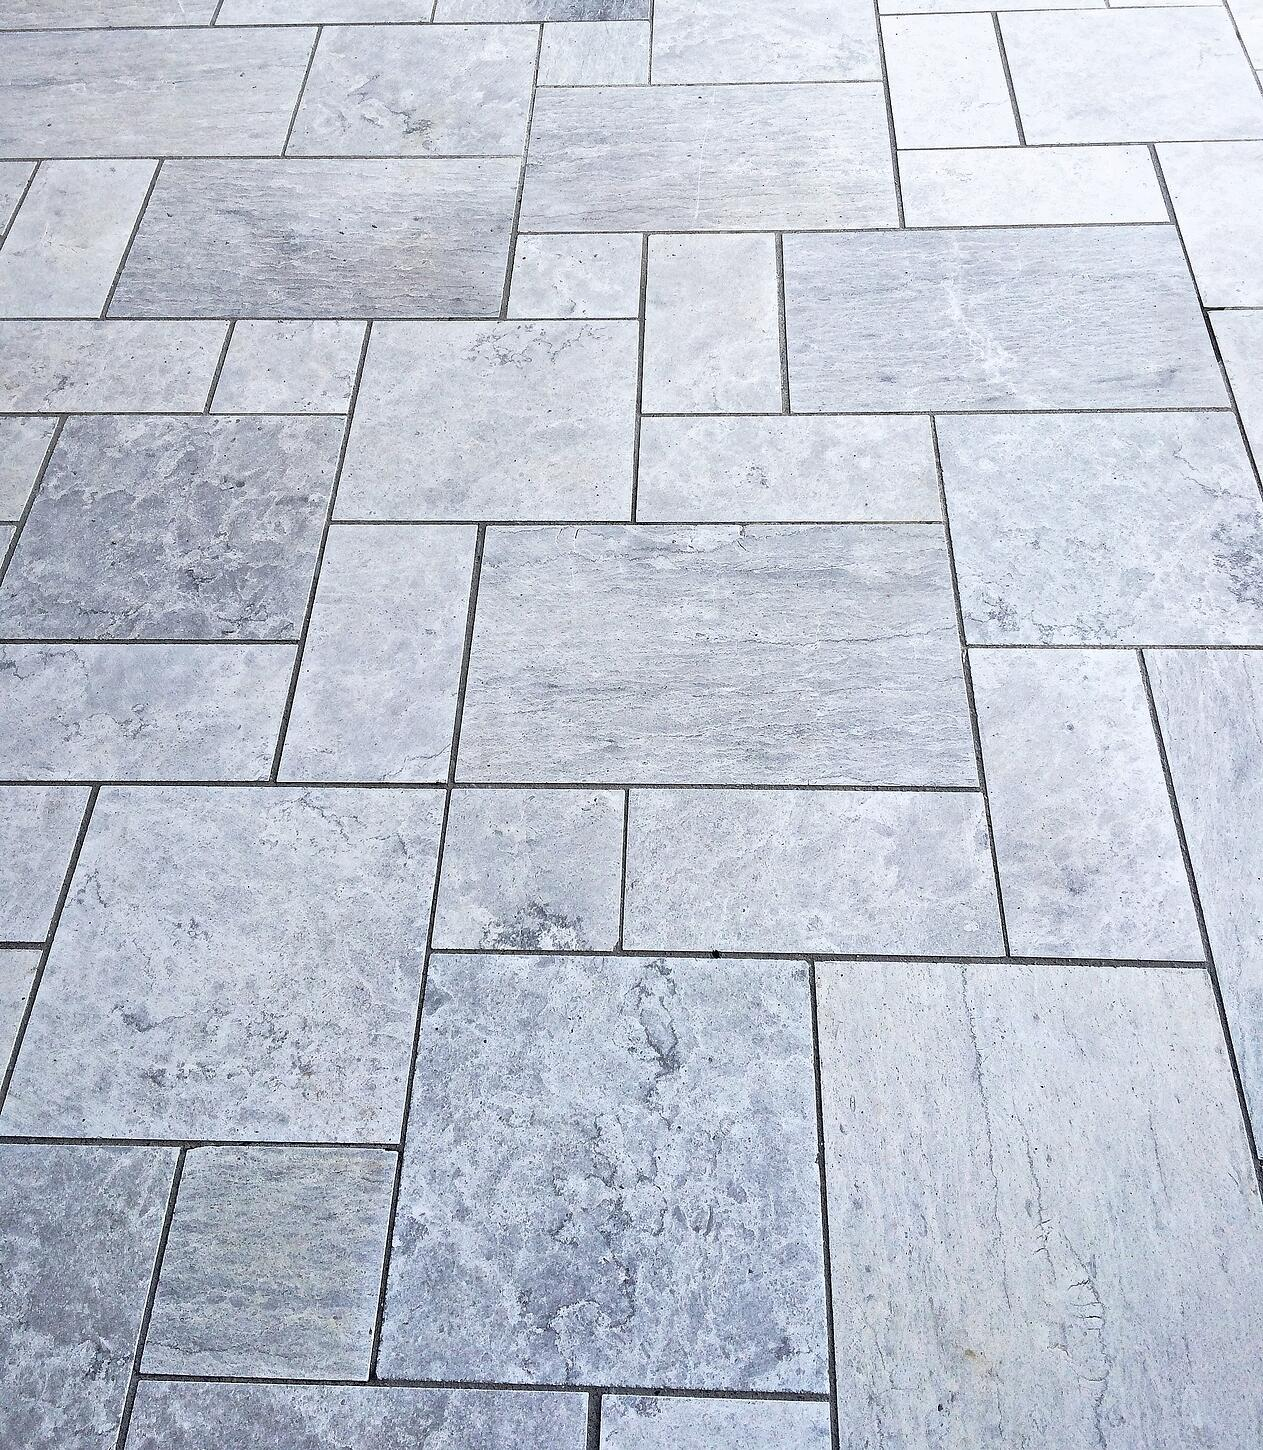 saint-clair-limestone-tiles-441357-edited.jpg